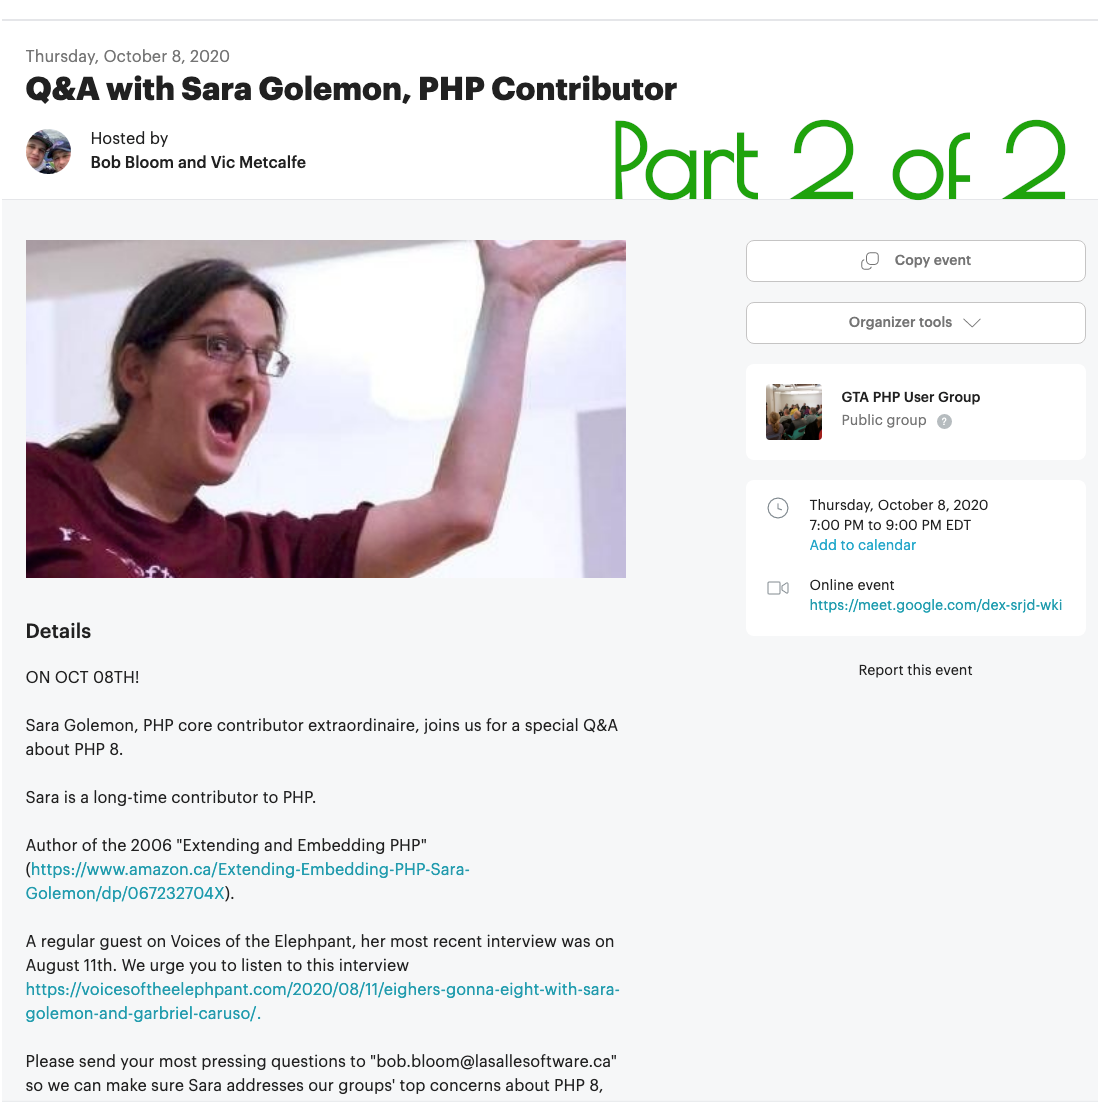 Q & A With Sara Golemon, PHP Contributor, Part 2 Of 2